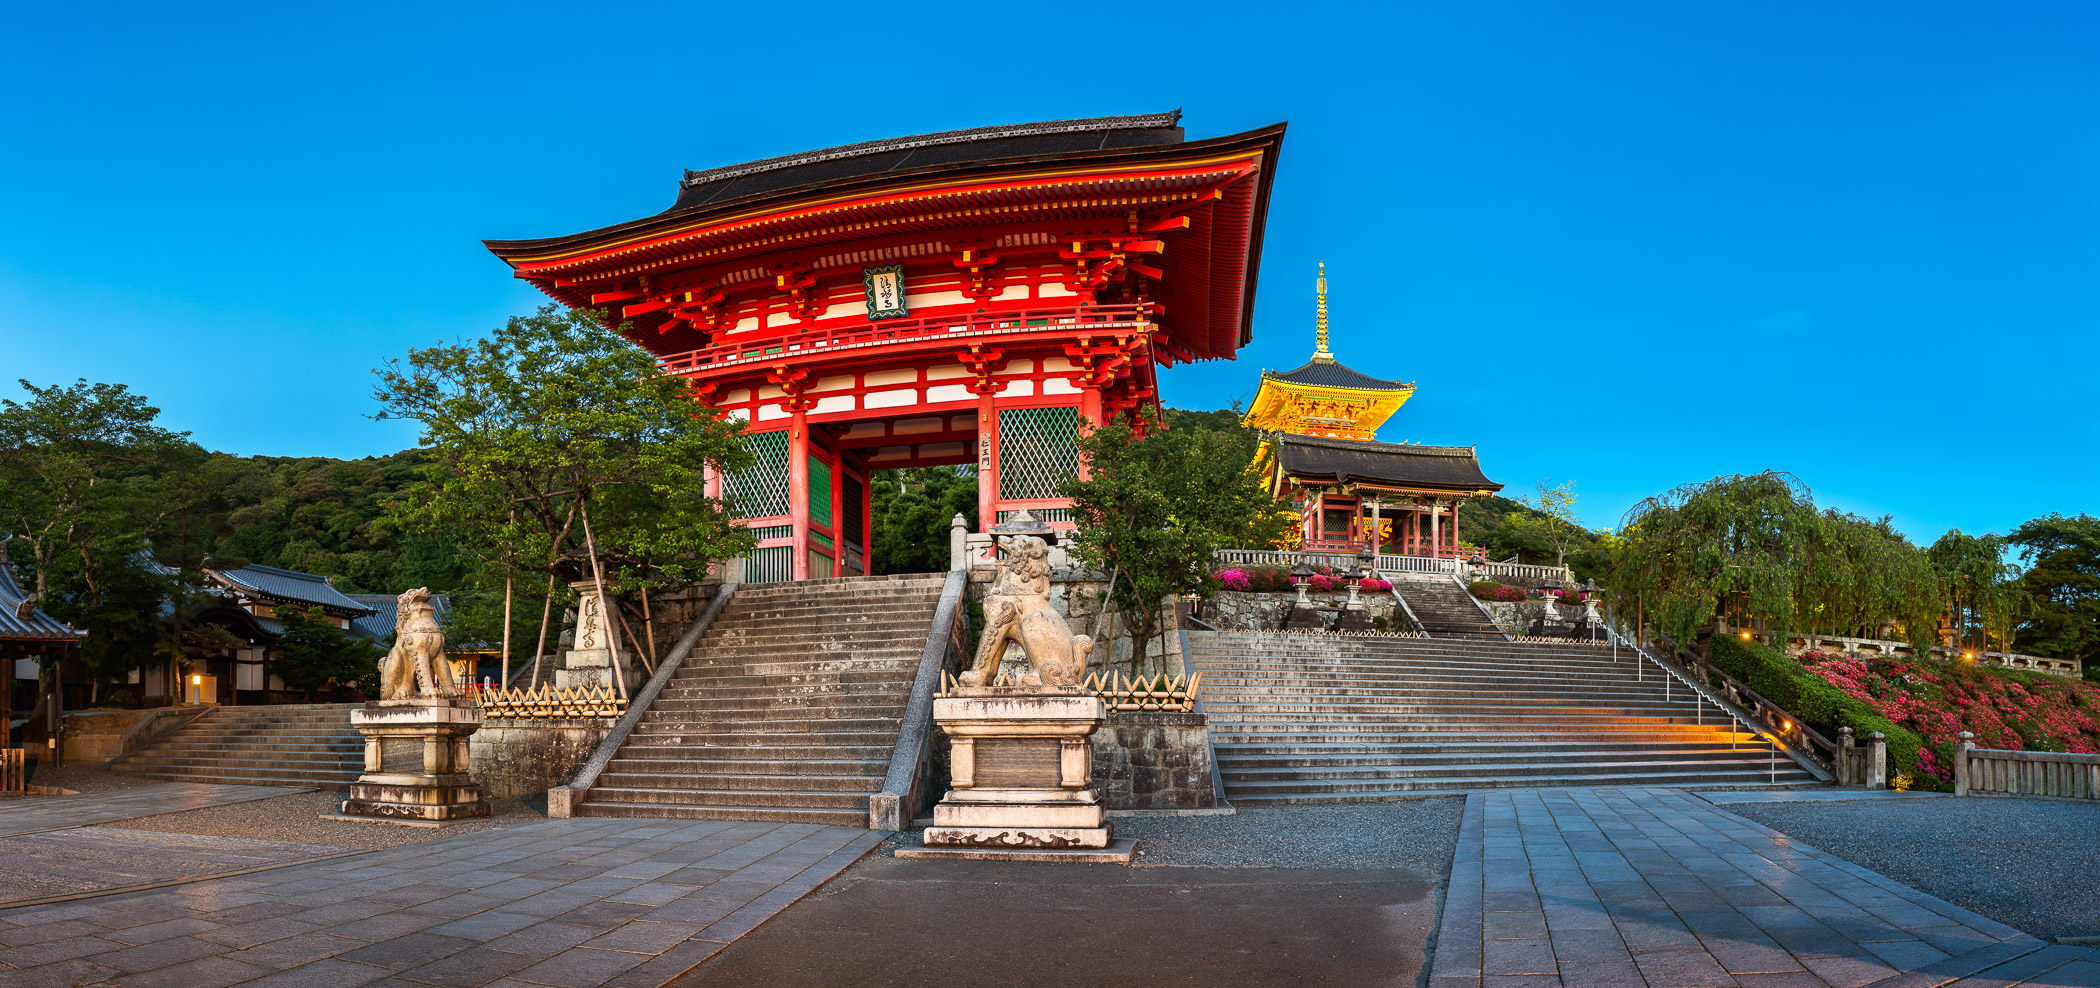 Panorama of Otowa-san Kiyomizu-dera Temple in the Evening, Kyoto, Japan